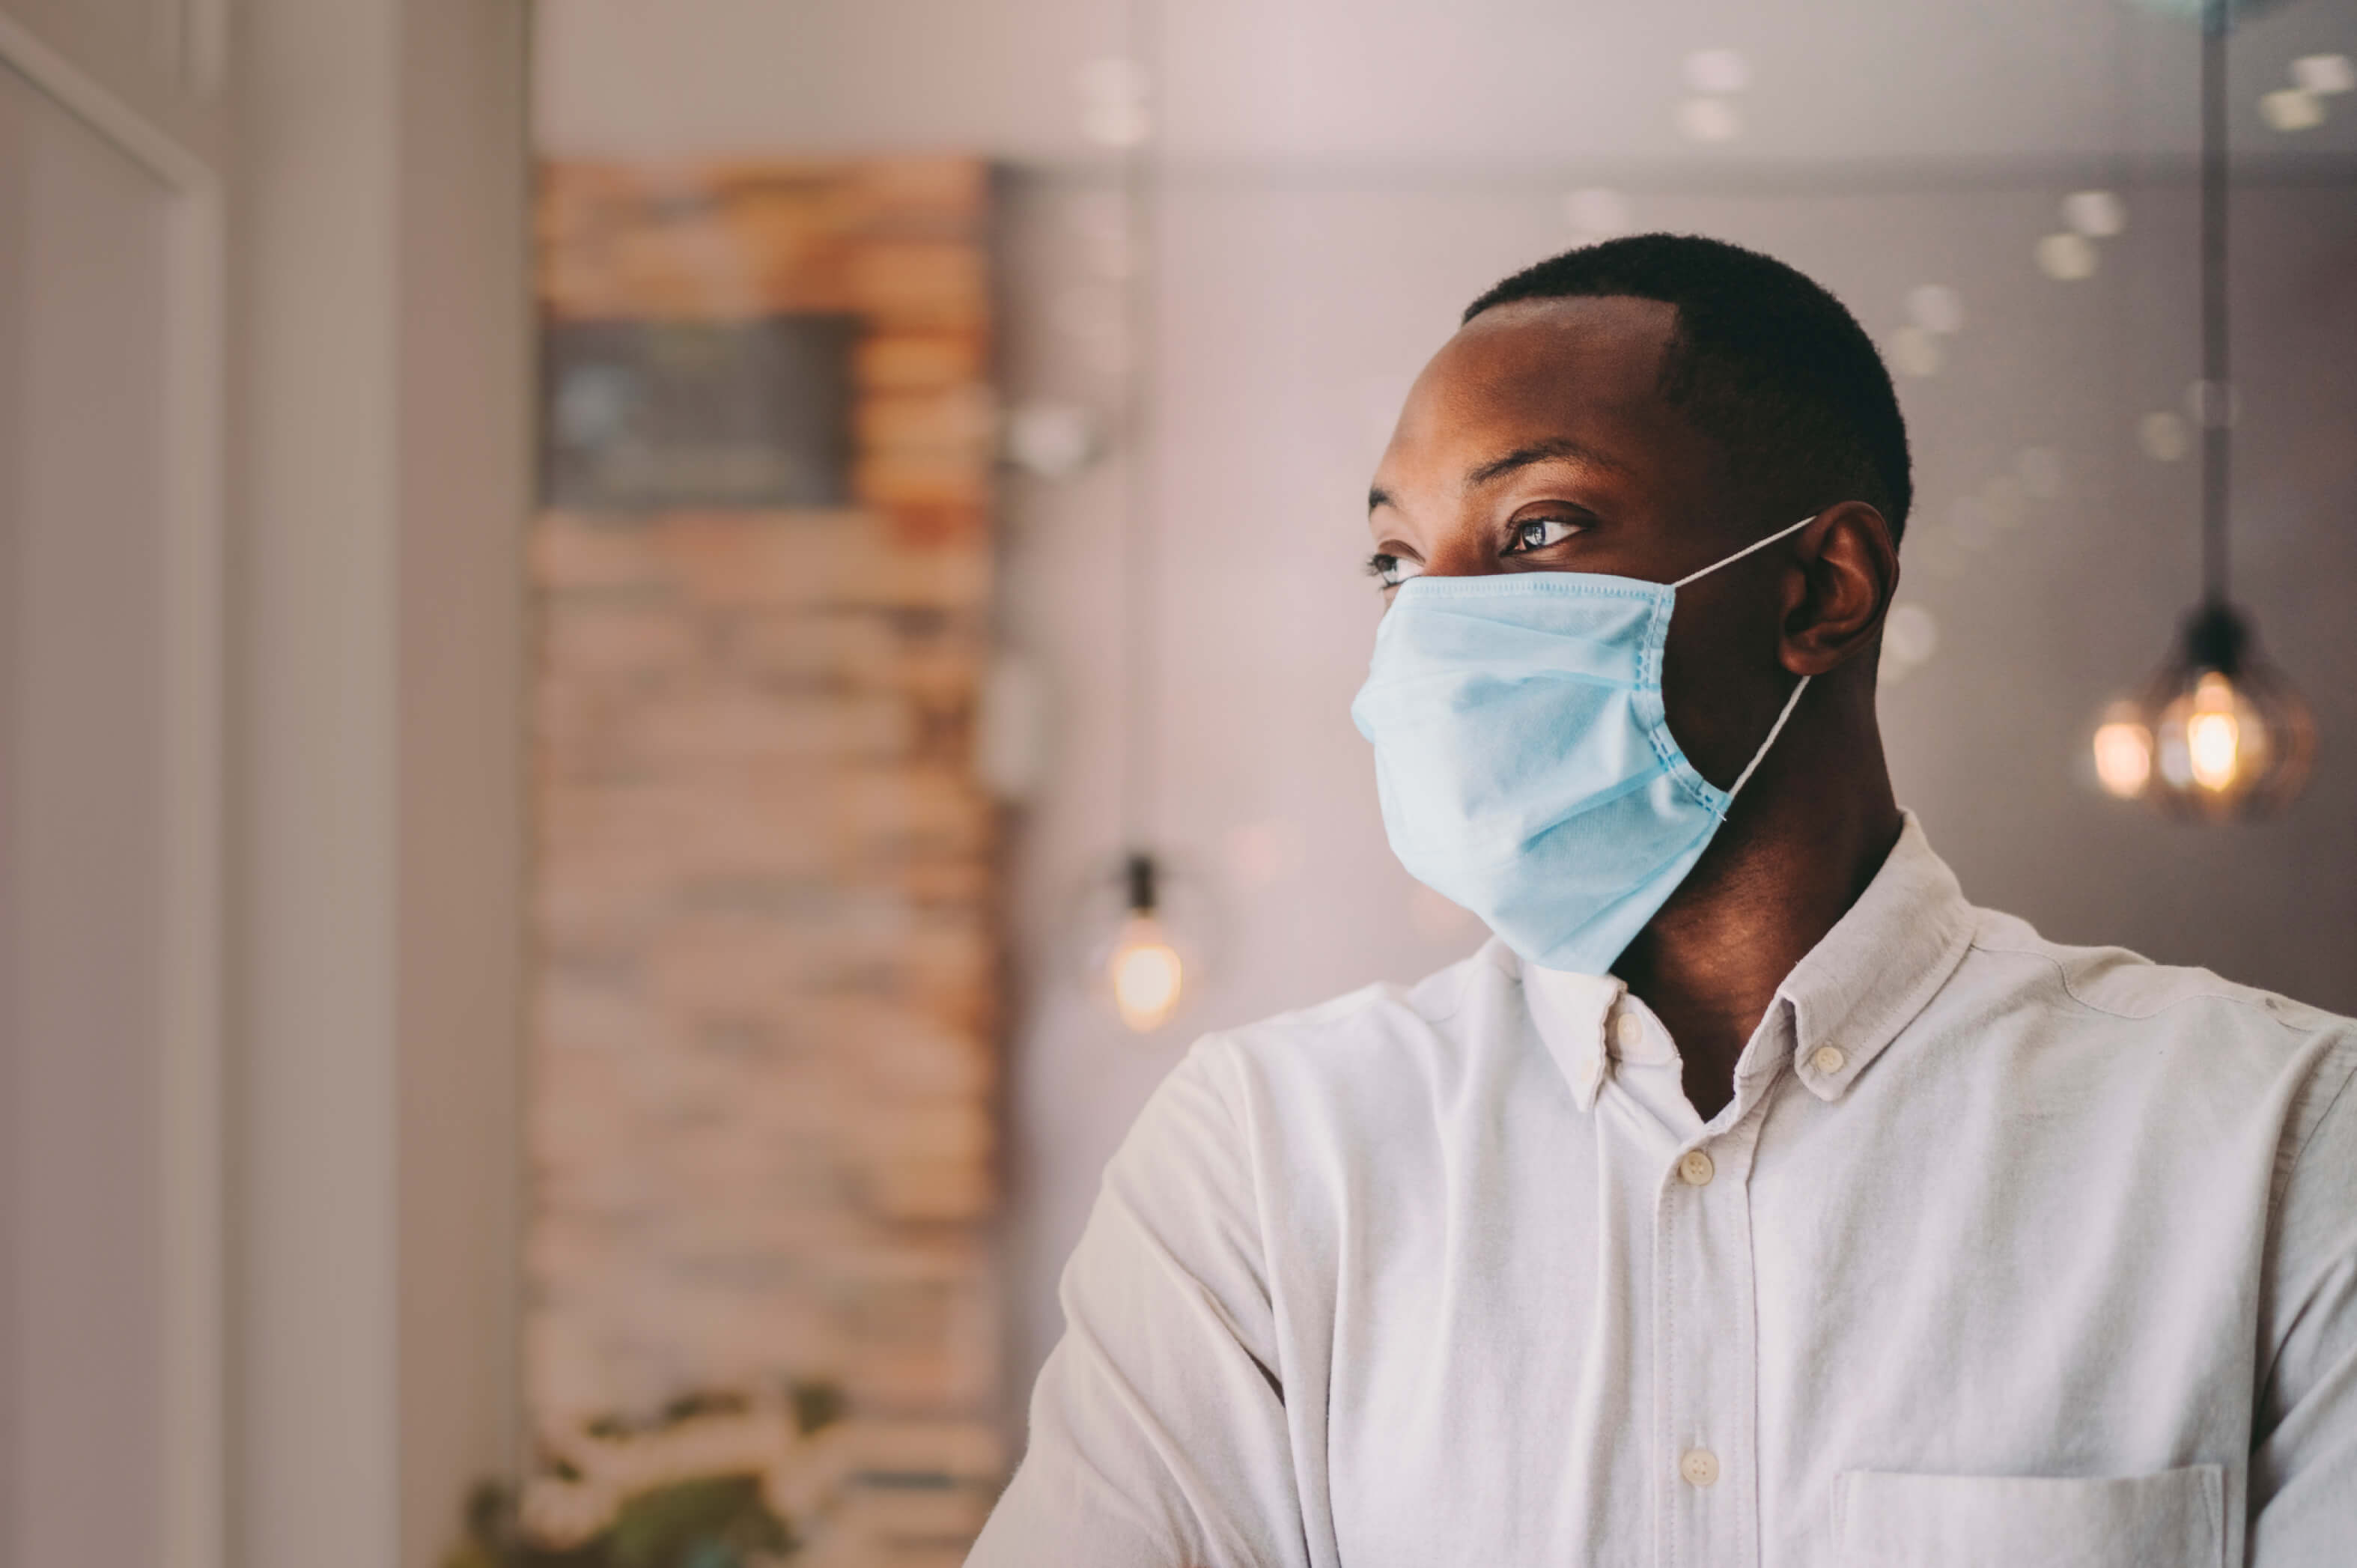 How has the Covid-19 pandemic impacted oral health?|Global Healthy Thinking Report 2021